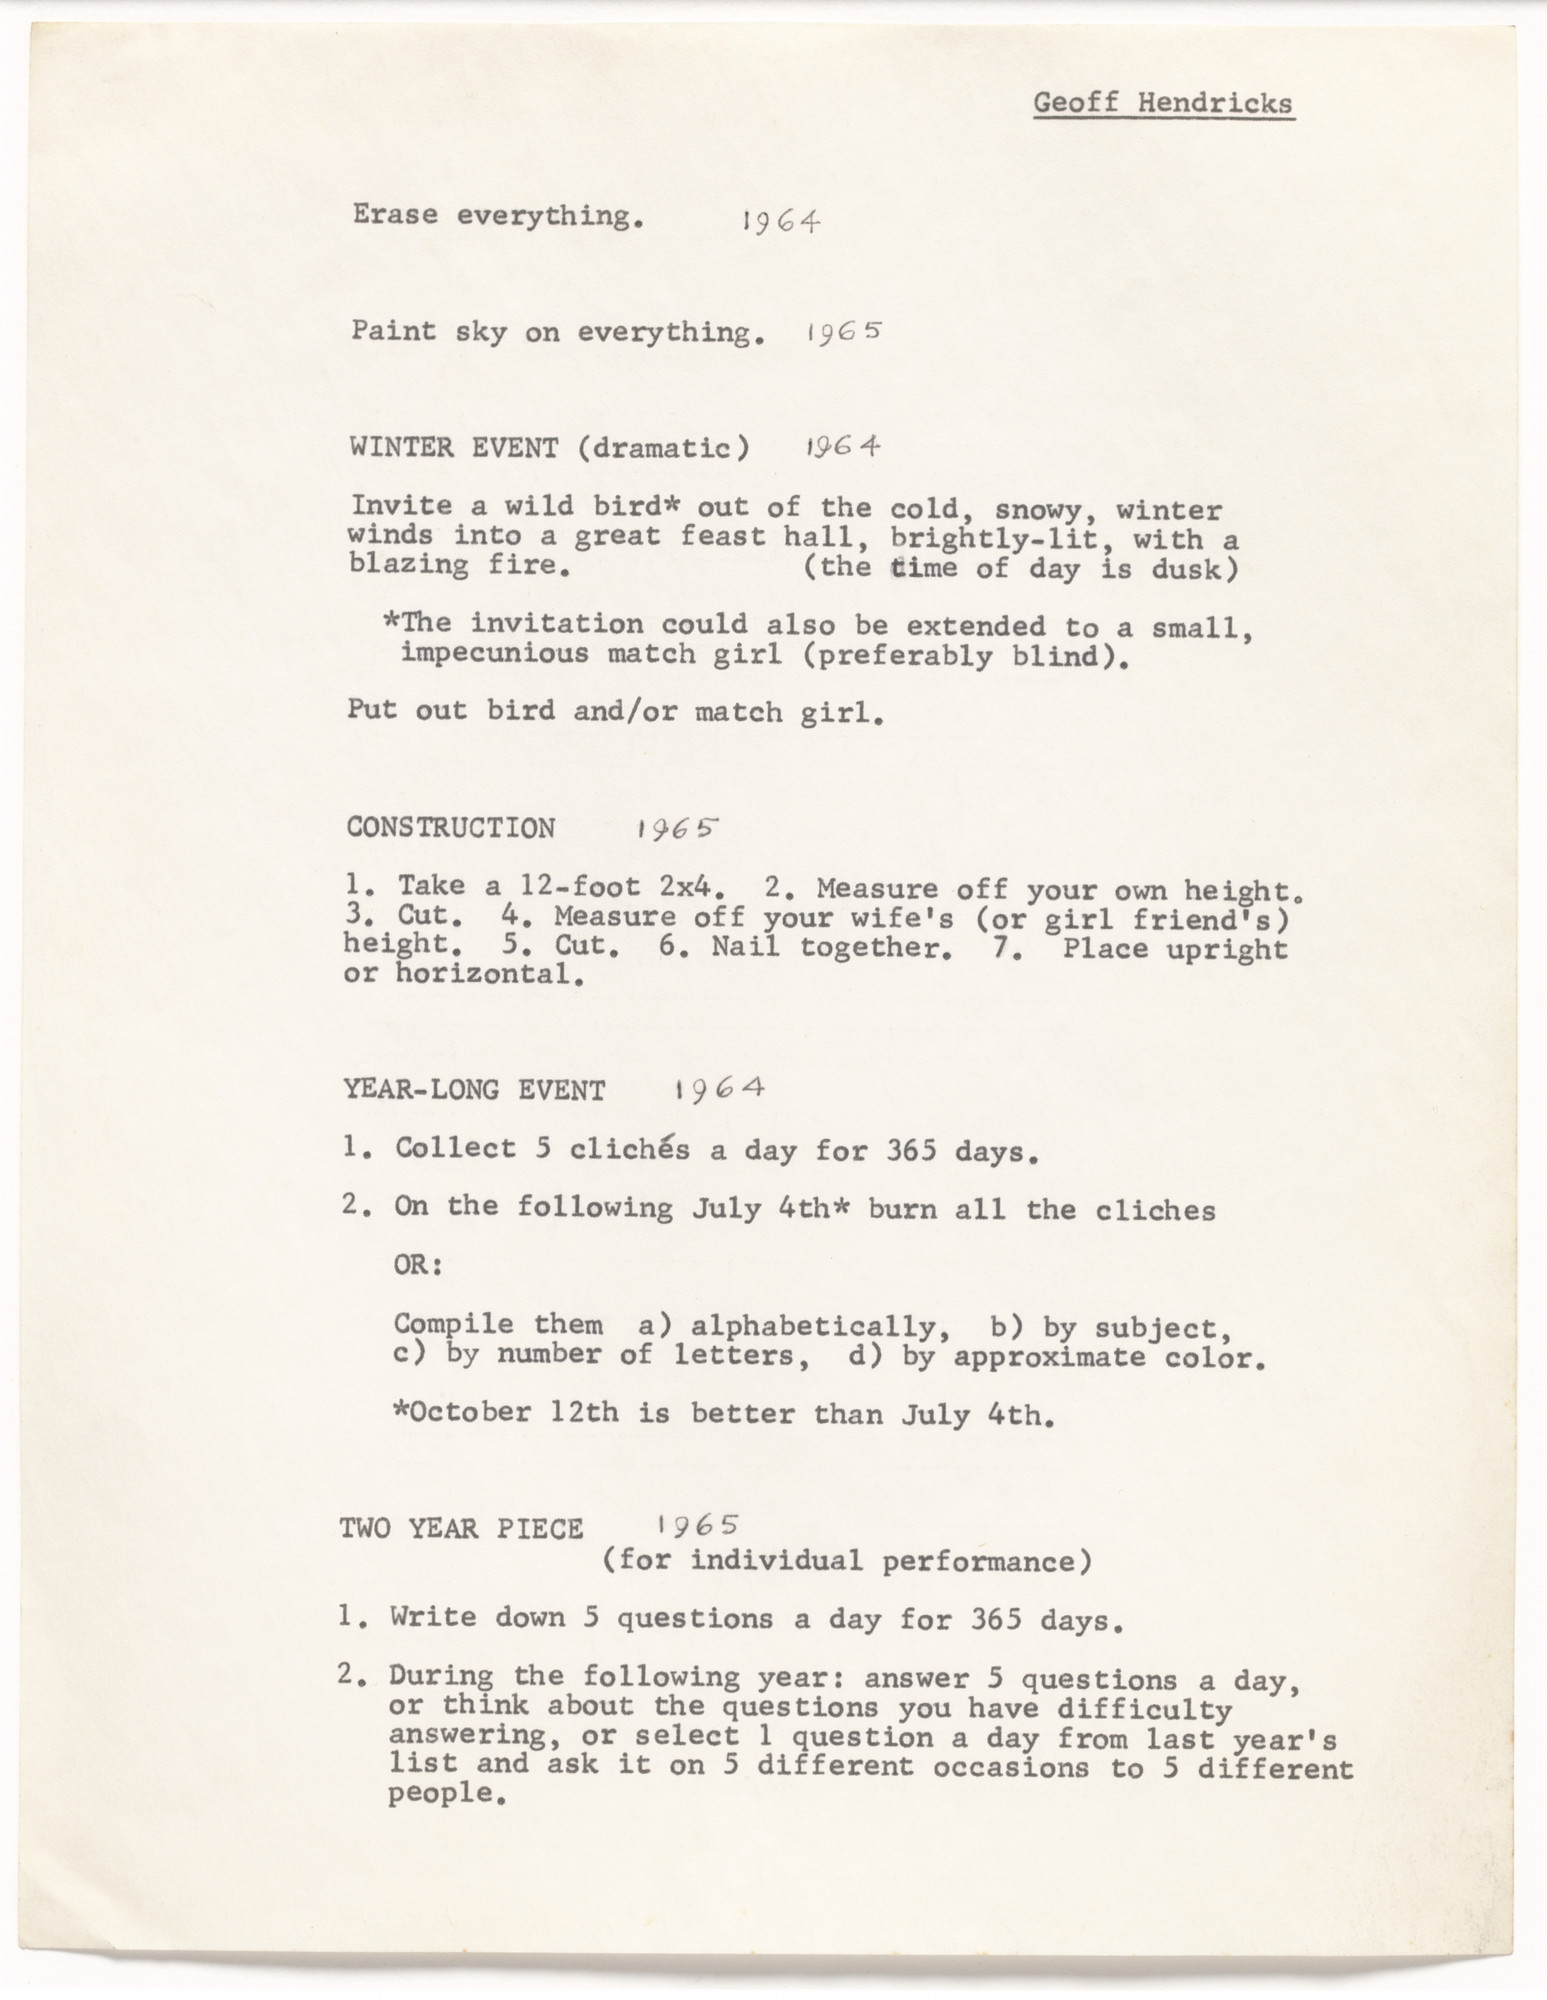 Geoffrey Hendricks. Erase everything, Paint sky on everything, Winter Event (dramatic), Construction, Year-Long Event, and Two Year Piece. 1964-65, typed 1966